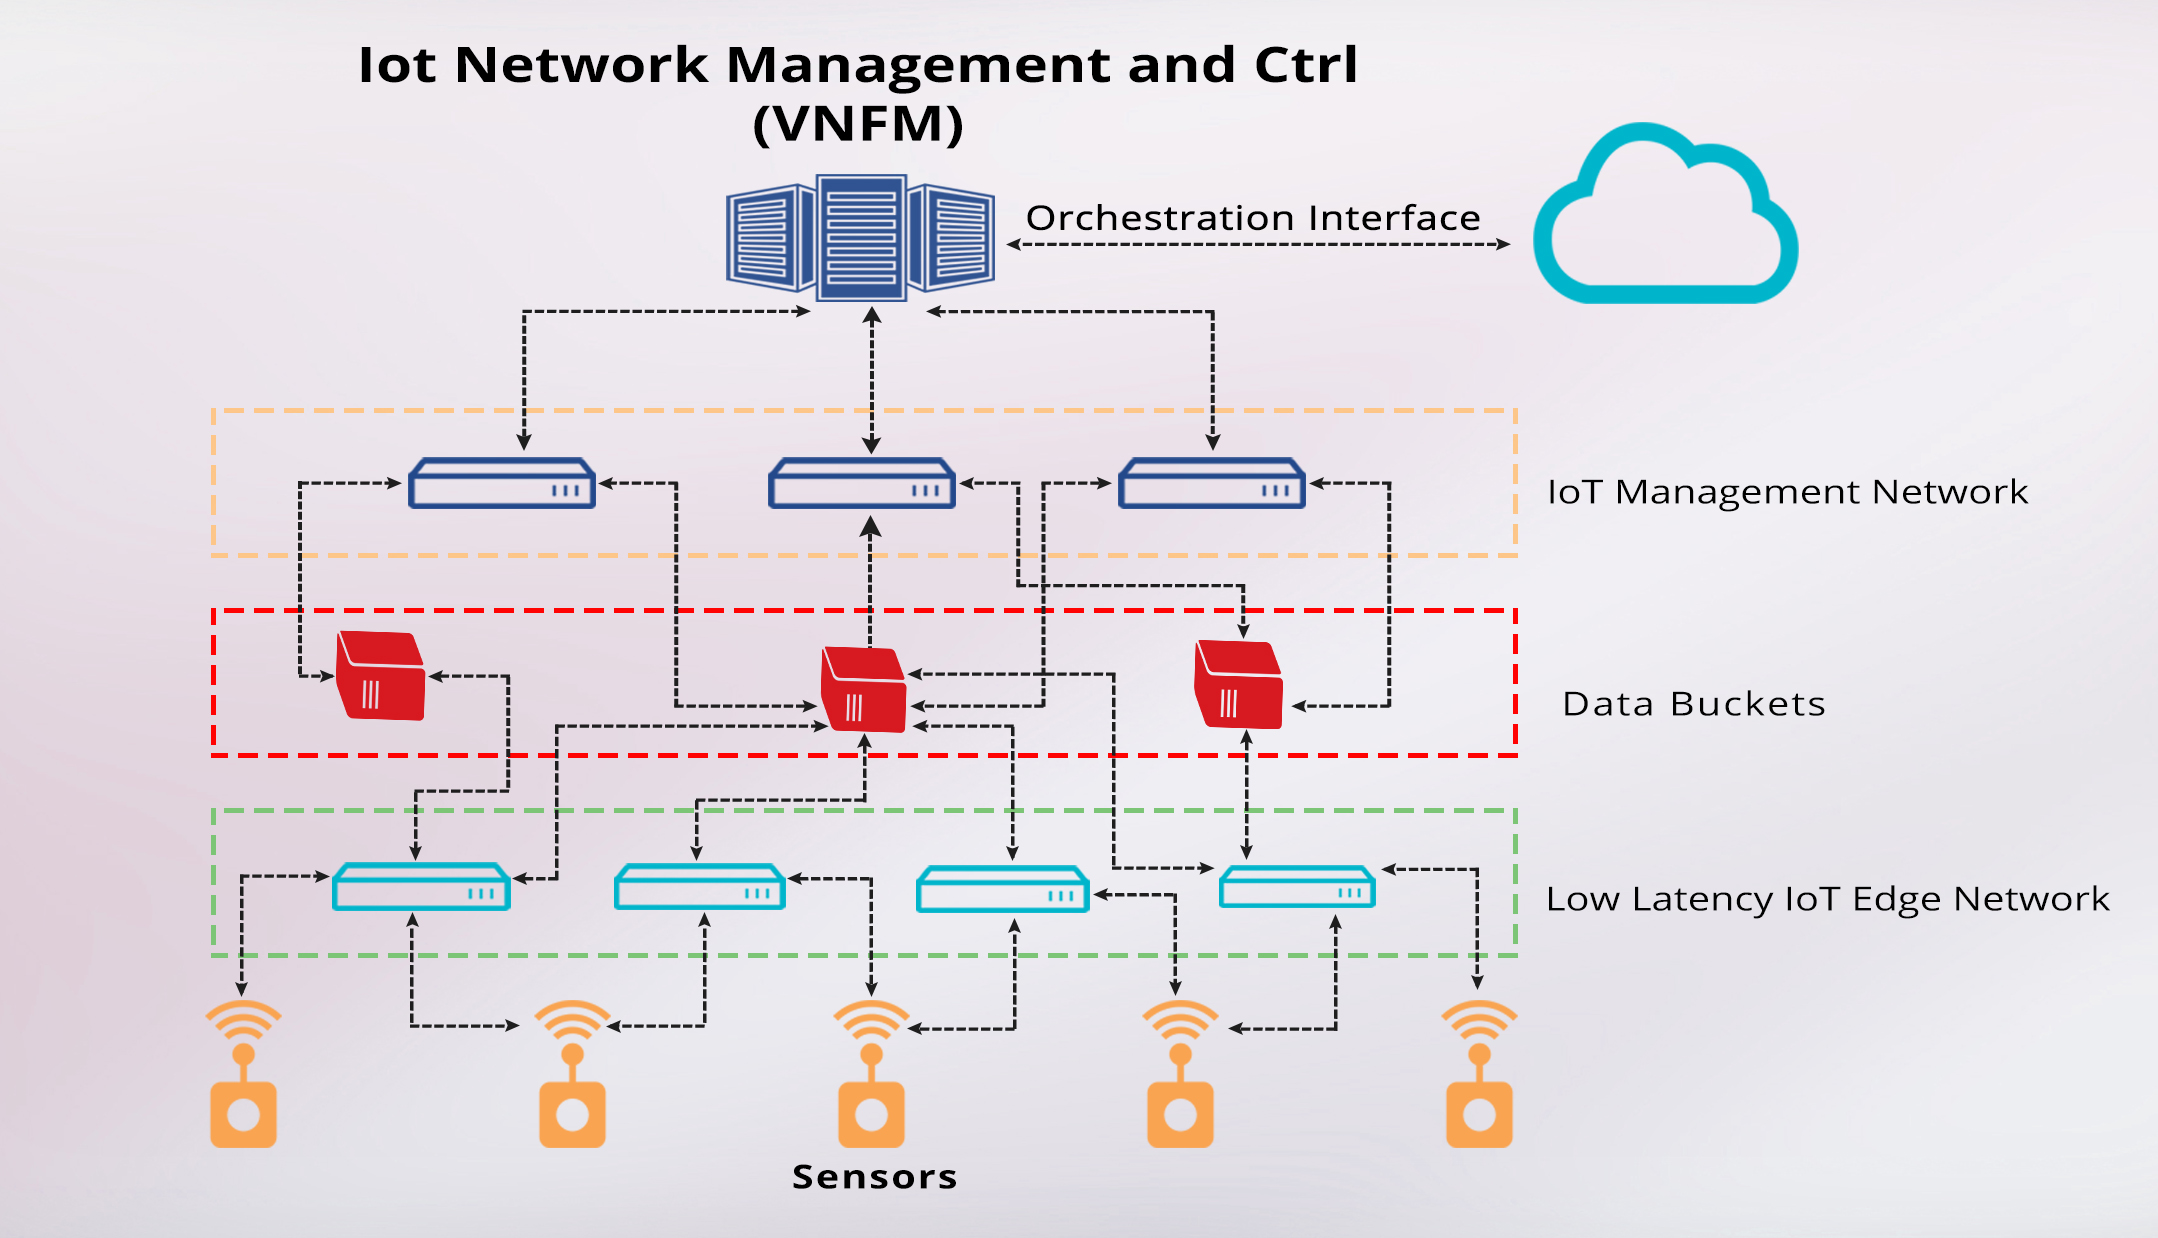 IoT Network Management and Control